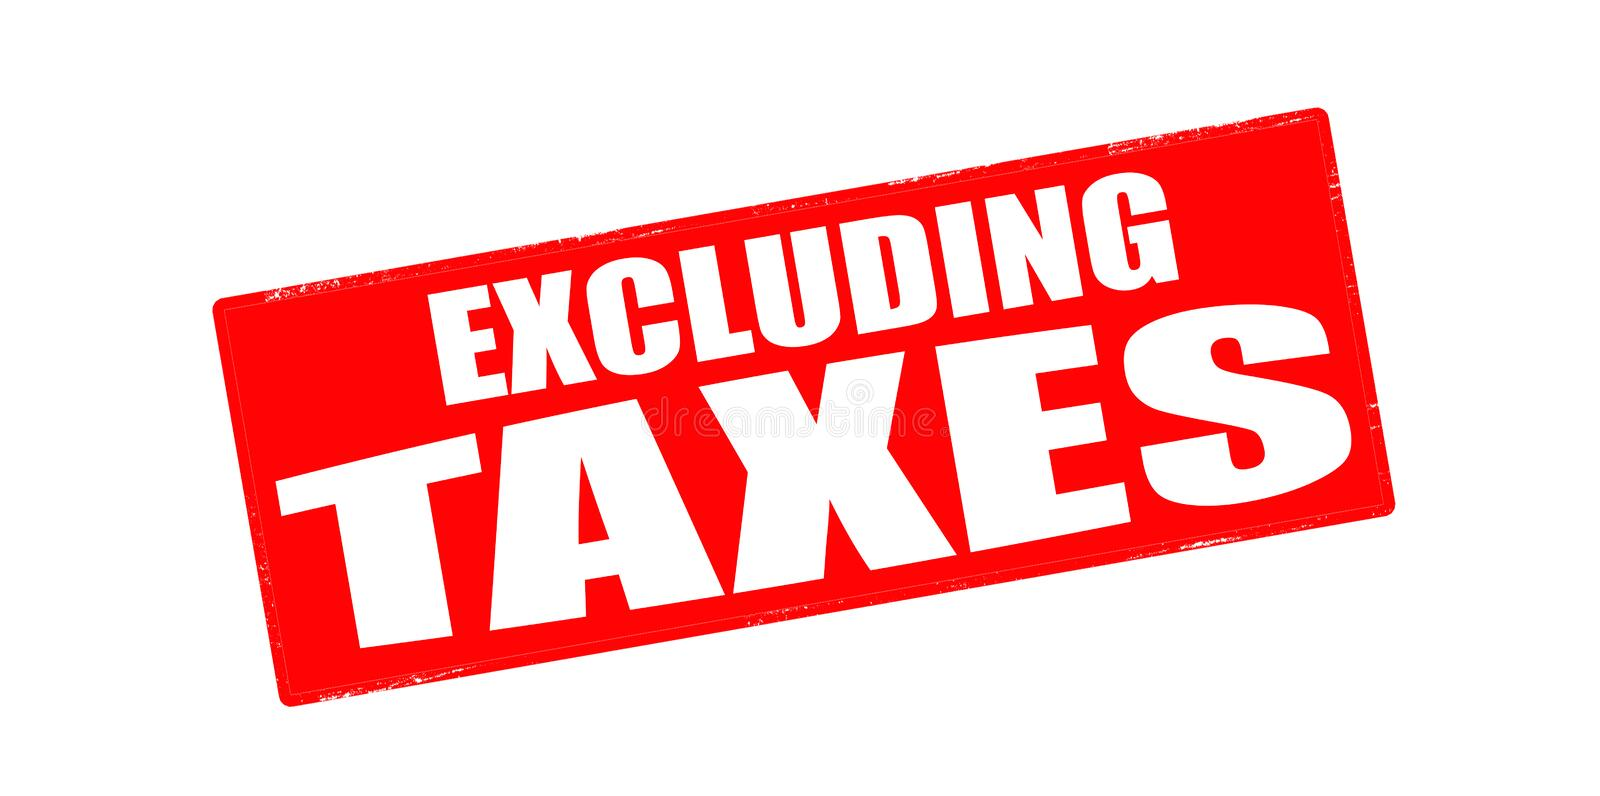 Excluding taxes. Stamp with text excluding taxes inside, illustration royalty free illustration